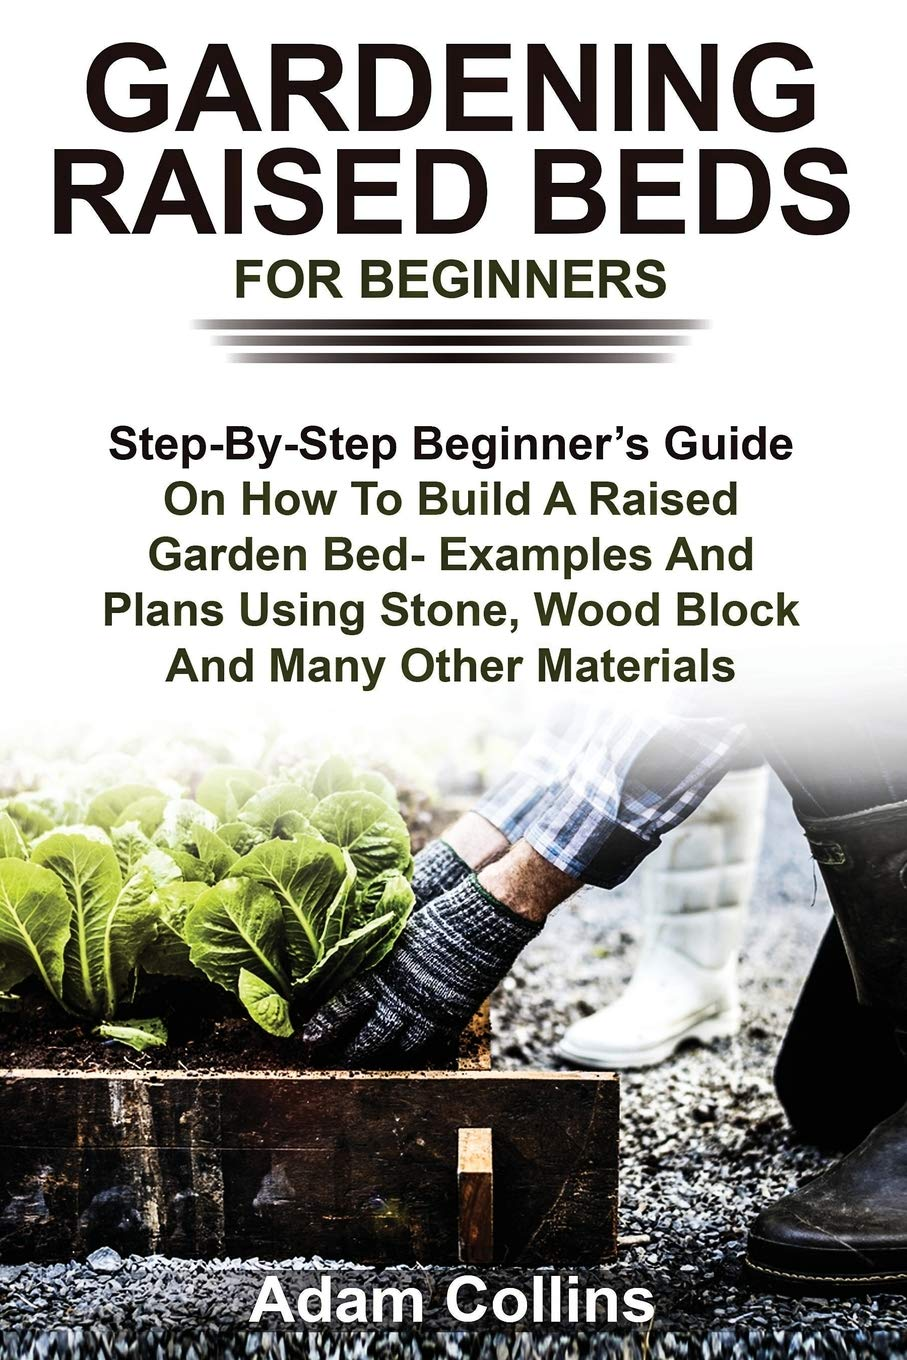 GARDENING RAISED BEDS FOR BEGINNERS: Step-By-Step Beginner's Guide On How To Build A Raised Garden Bed- Examples And Plans Using Stone, Wood Block And Many Other Materials